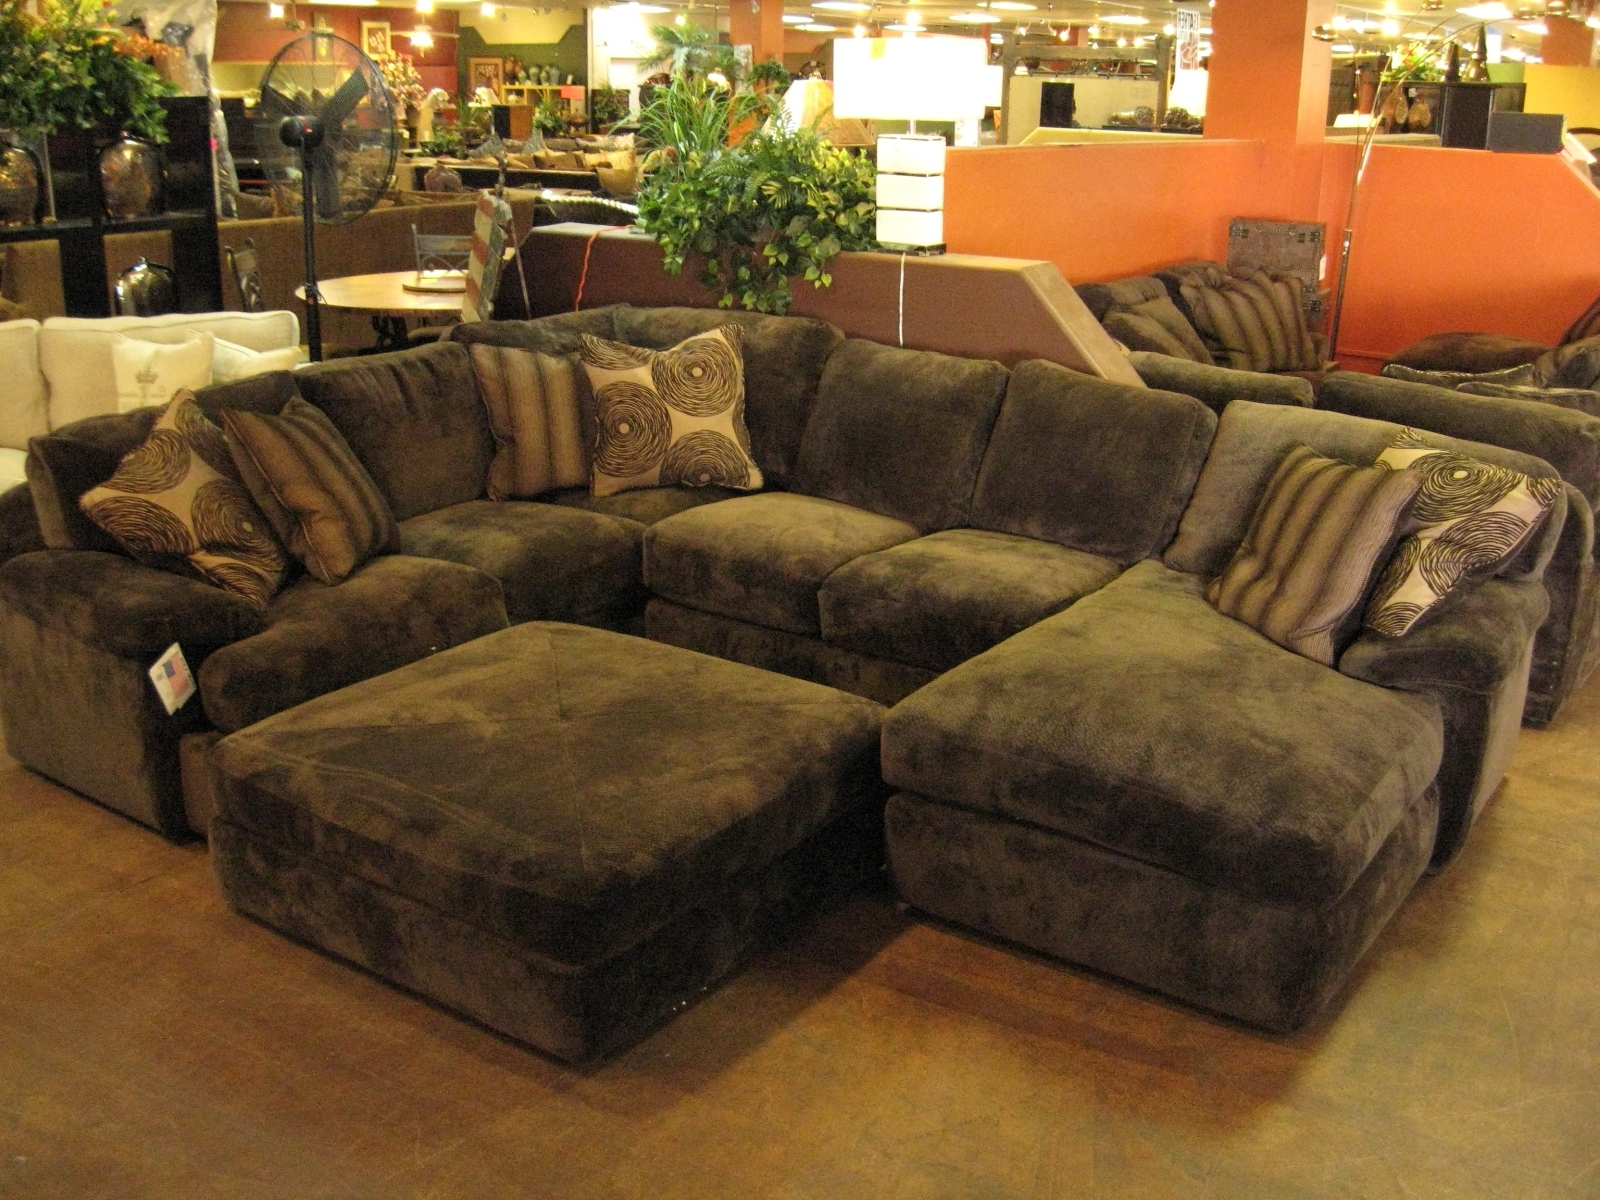 Trendy Extra Deep U Shaped Sofa With Chaise And Ottoman Of Gorgeous Extra Within Sofas With Chaise And Ottoman (View 19 of 20)